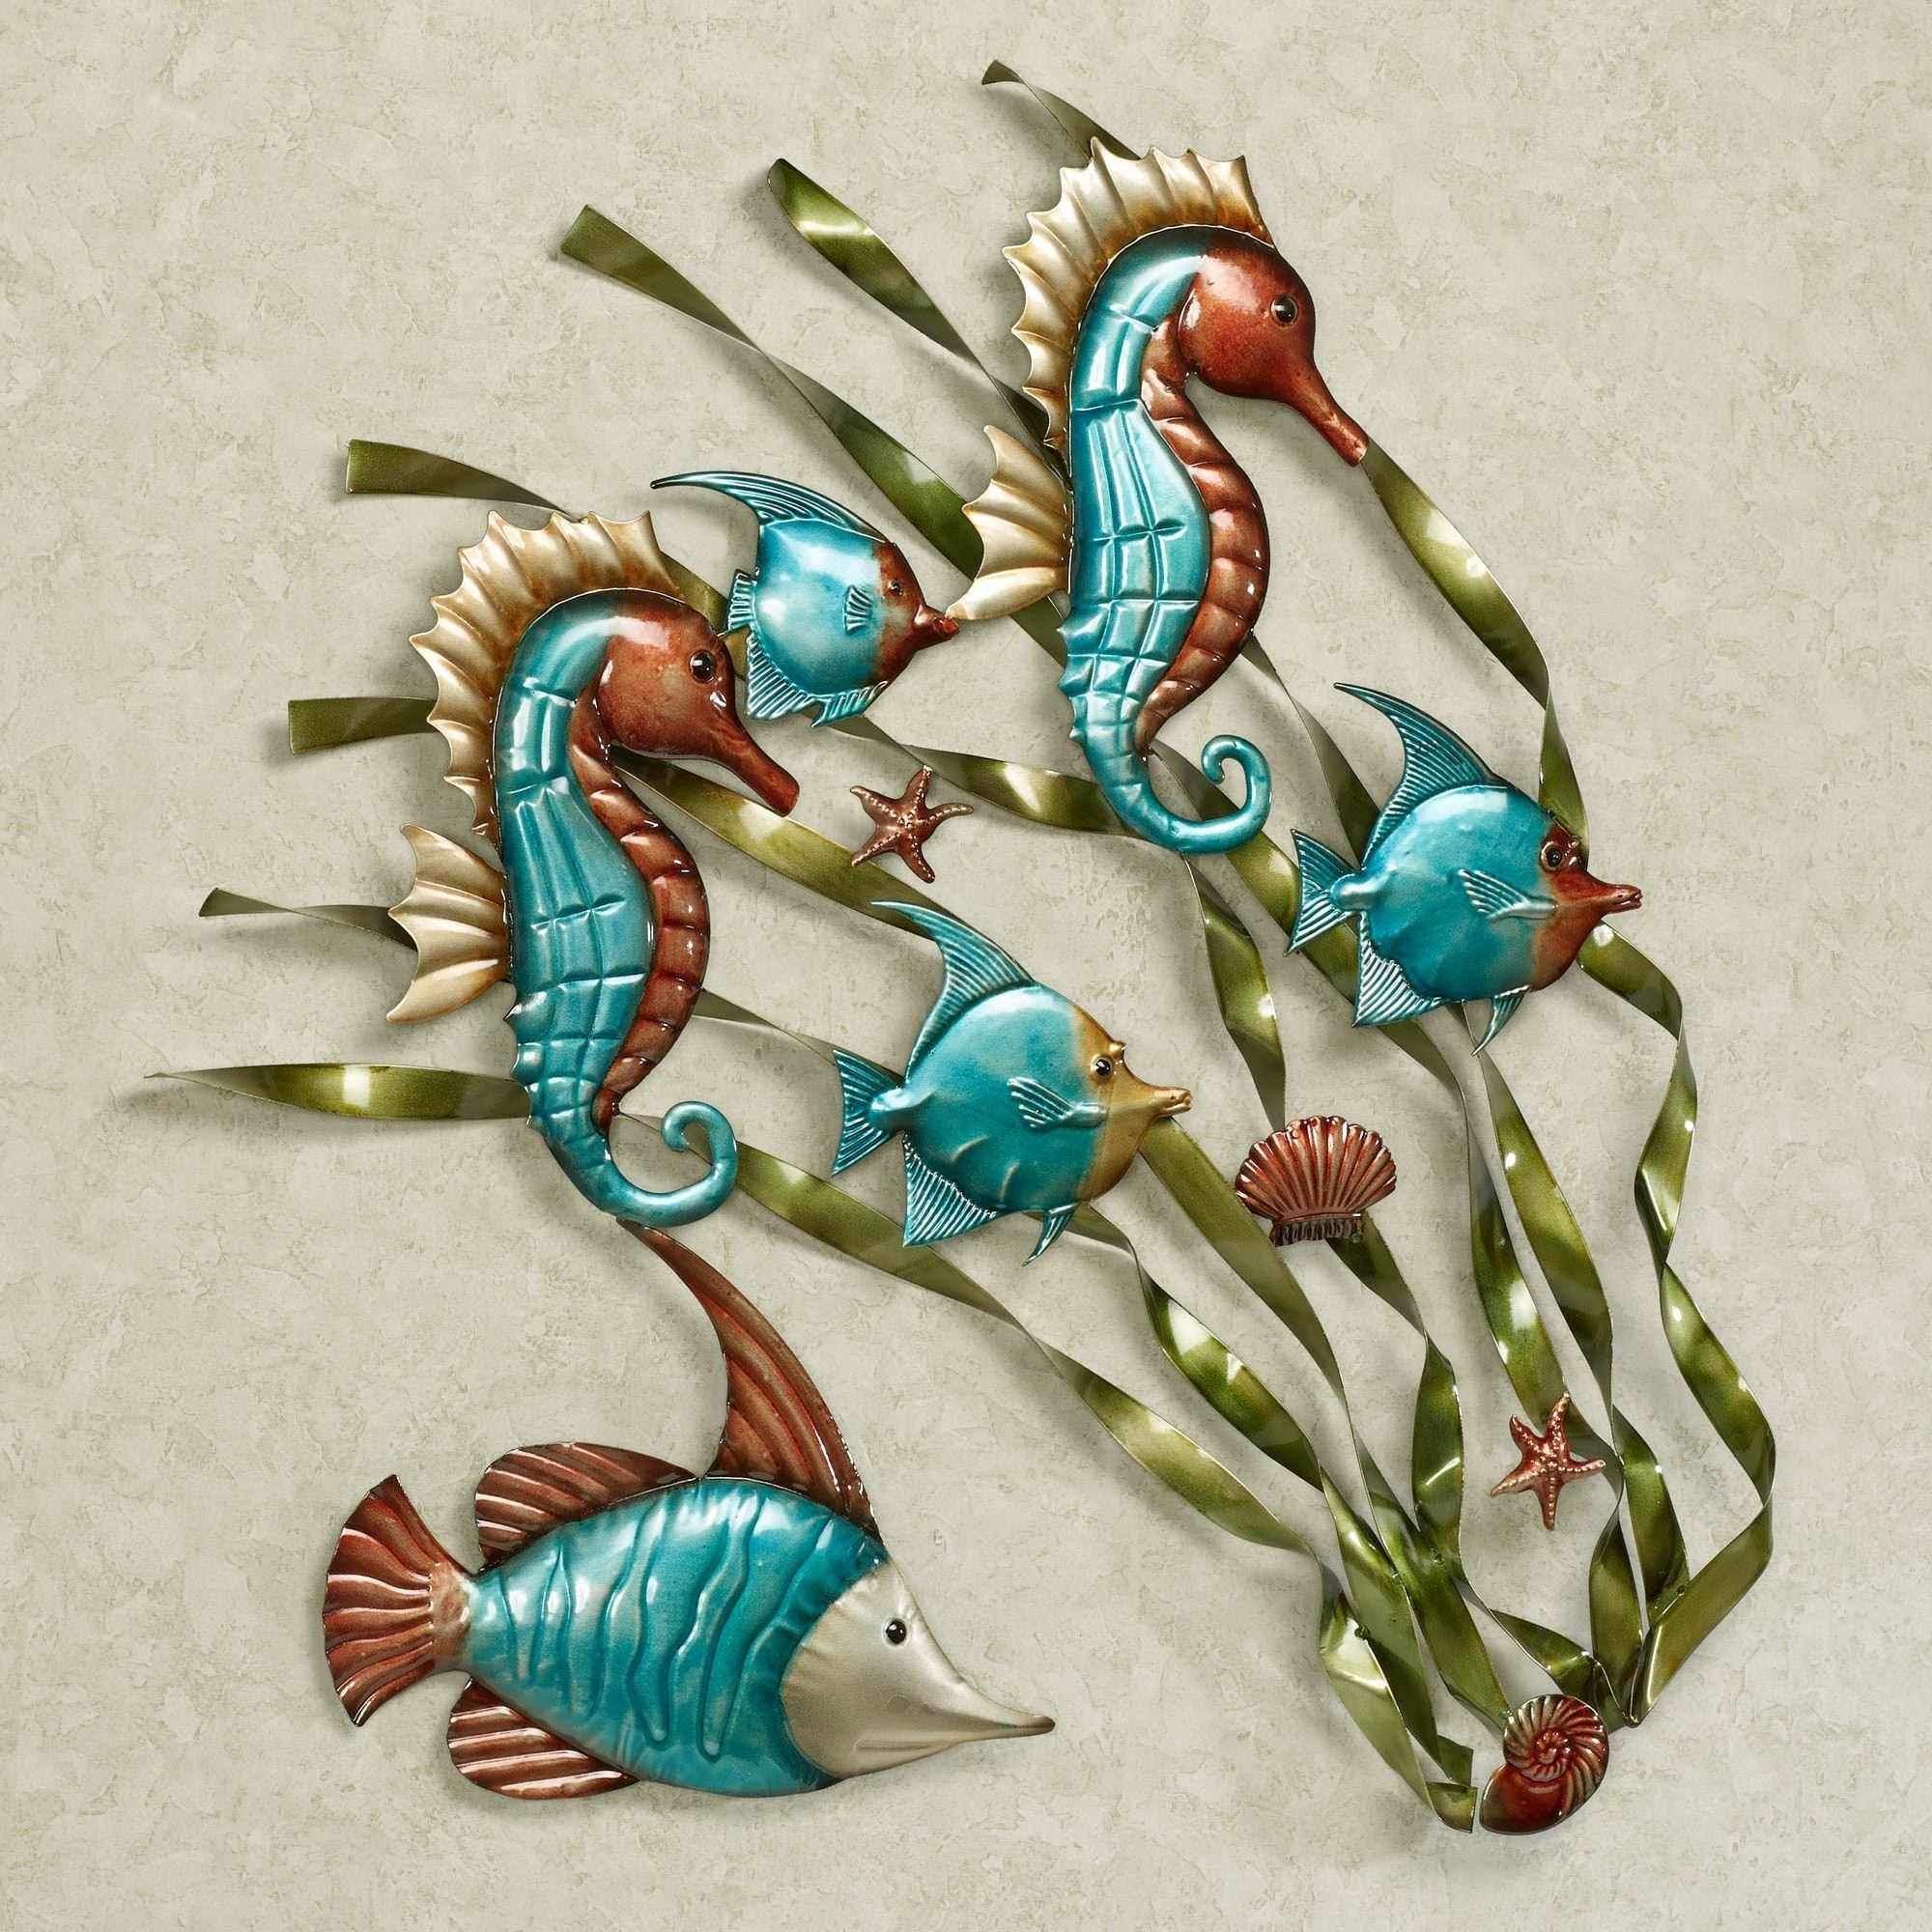 Most Recently Released Turquoise Metal Wall Art Inside Deep Sea Fish And Seahorse Metal Wall Art (View 5 of 15)